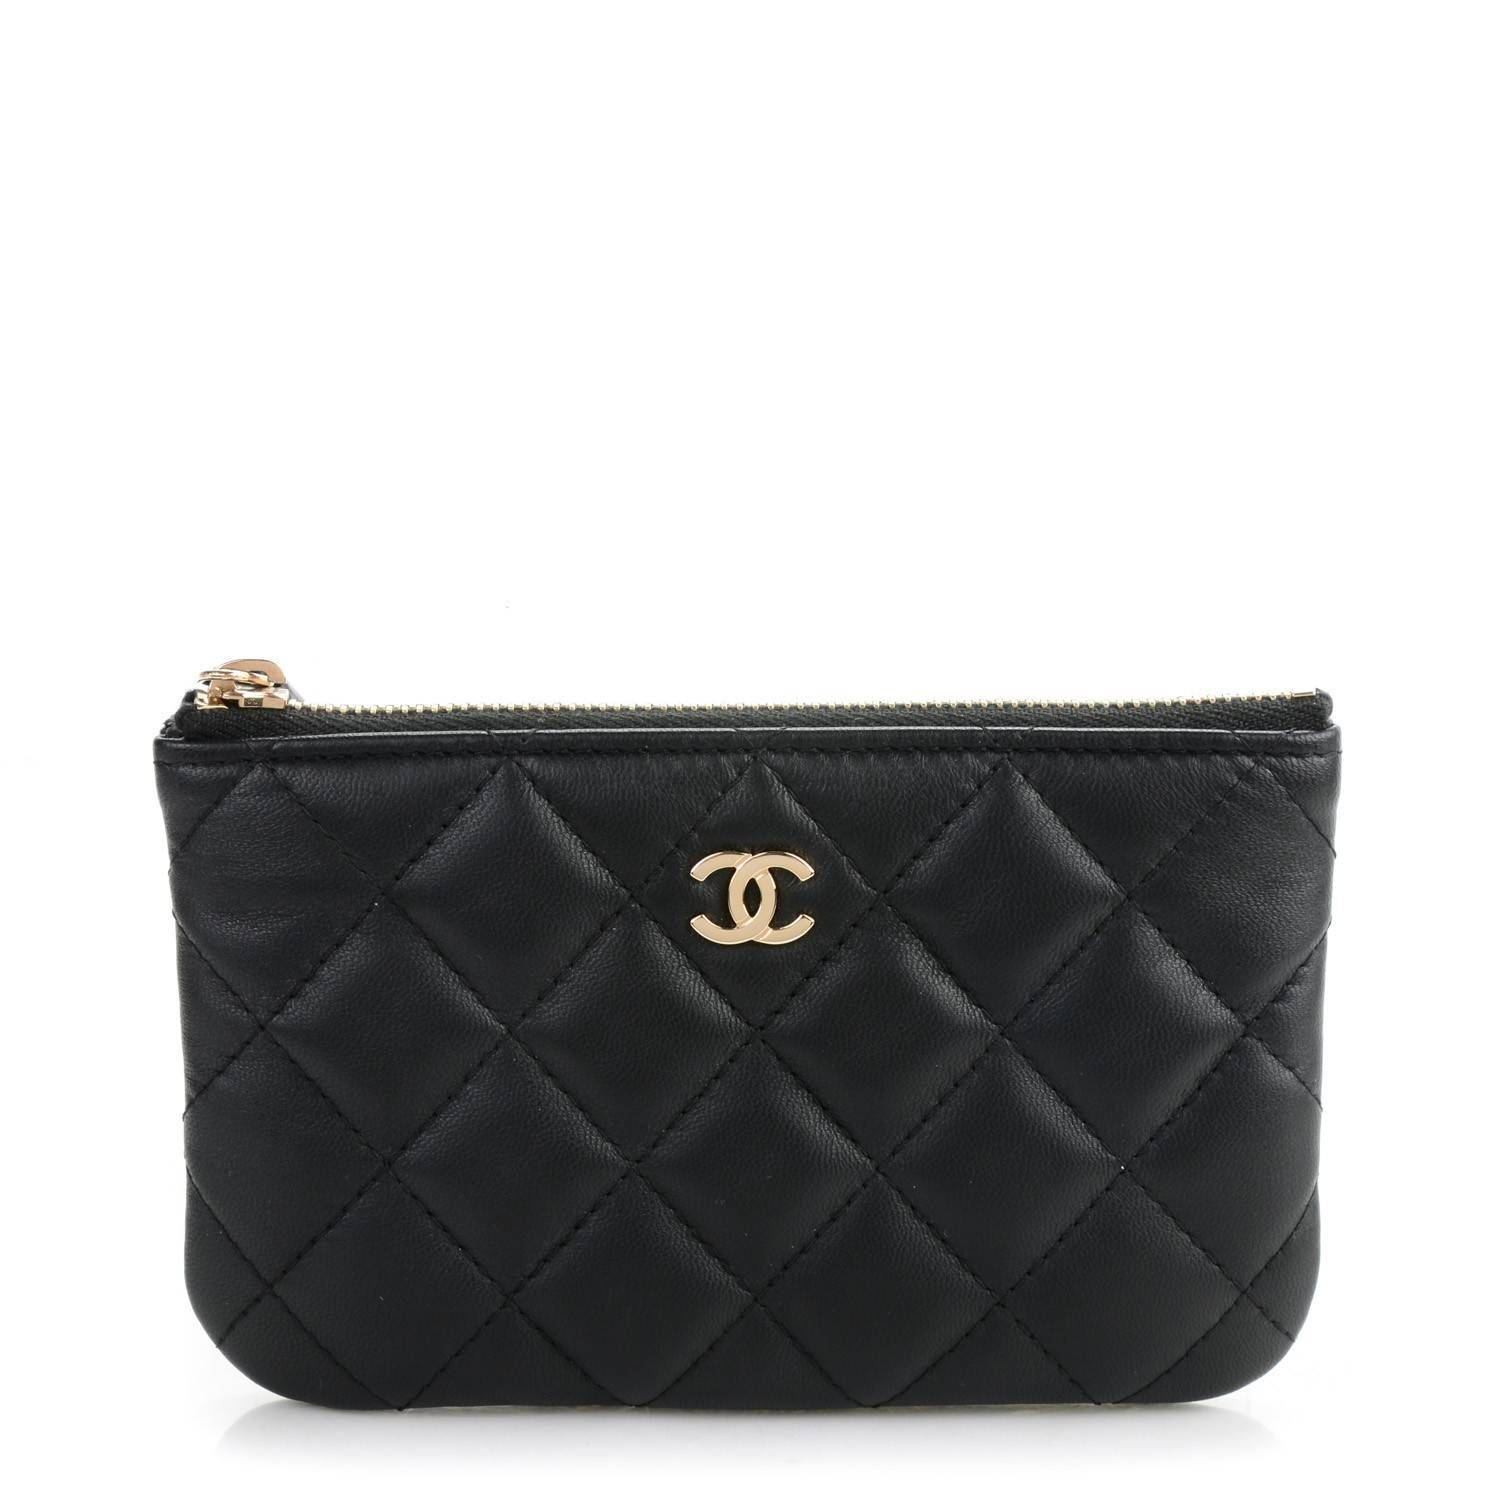 26f18ed40c4054 This is an authentic CHANEL Lambskin Quilted Coin Purse in Black. This  ultra-stylish